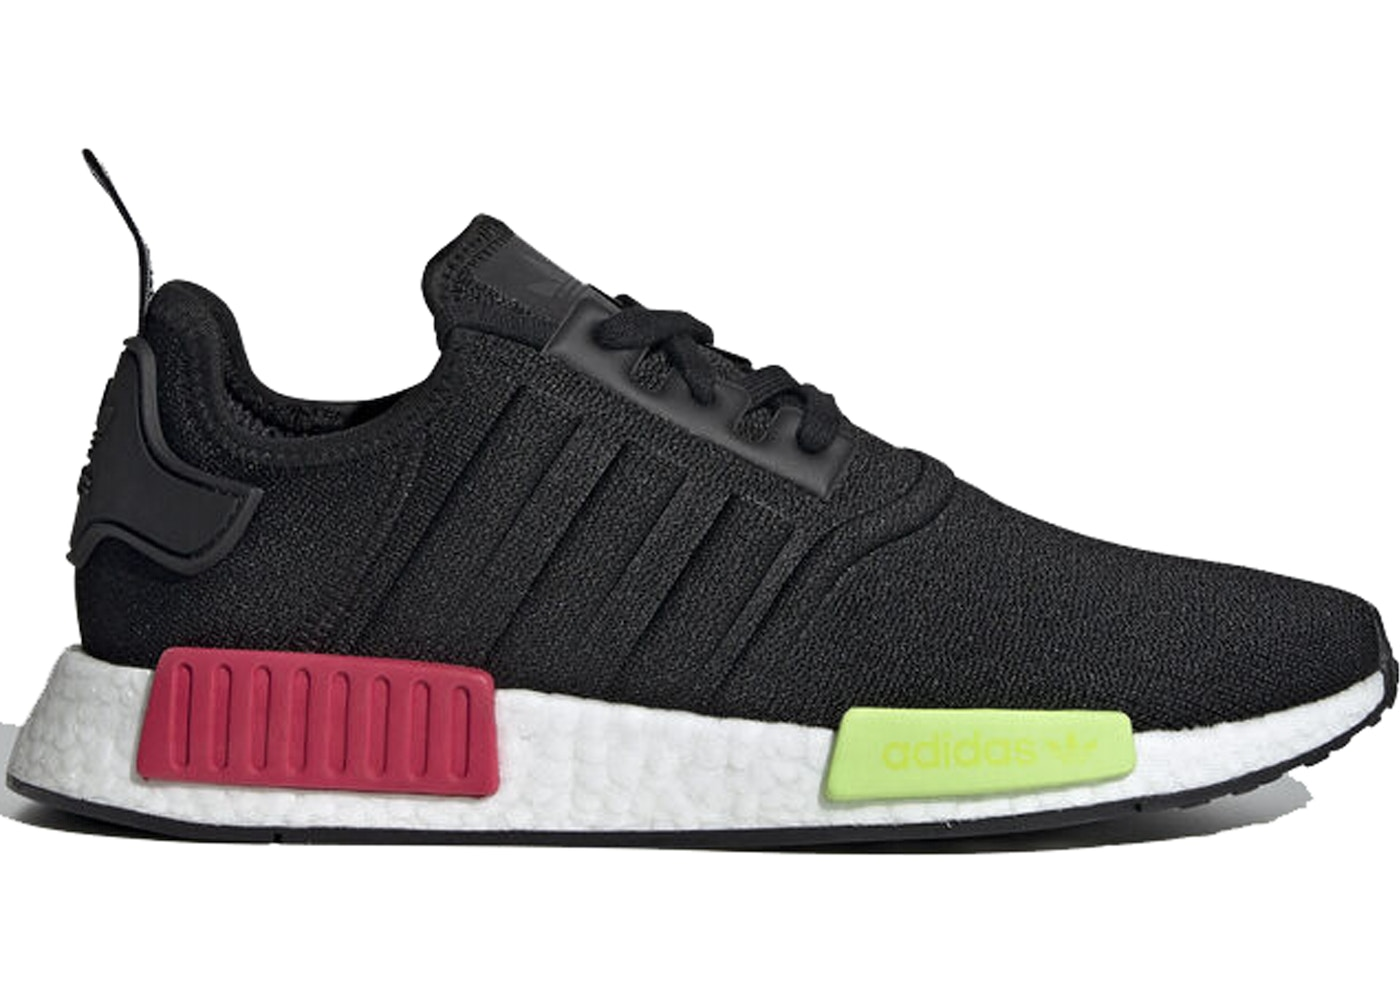 finest selection a5cd3 fc4c3 adidas NMD Shoes - Release Date